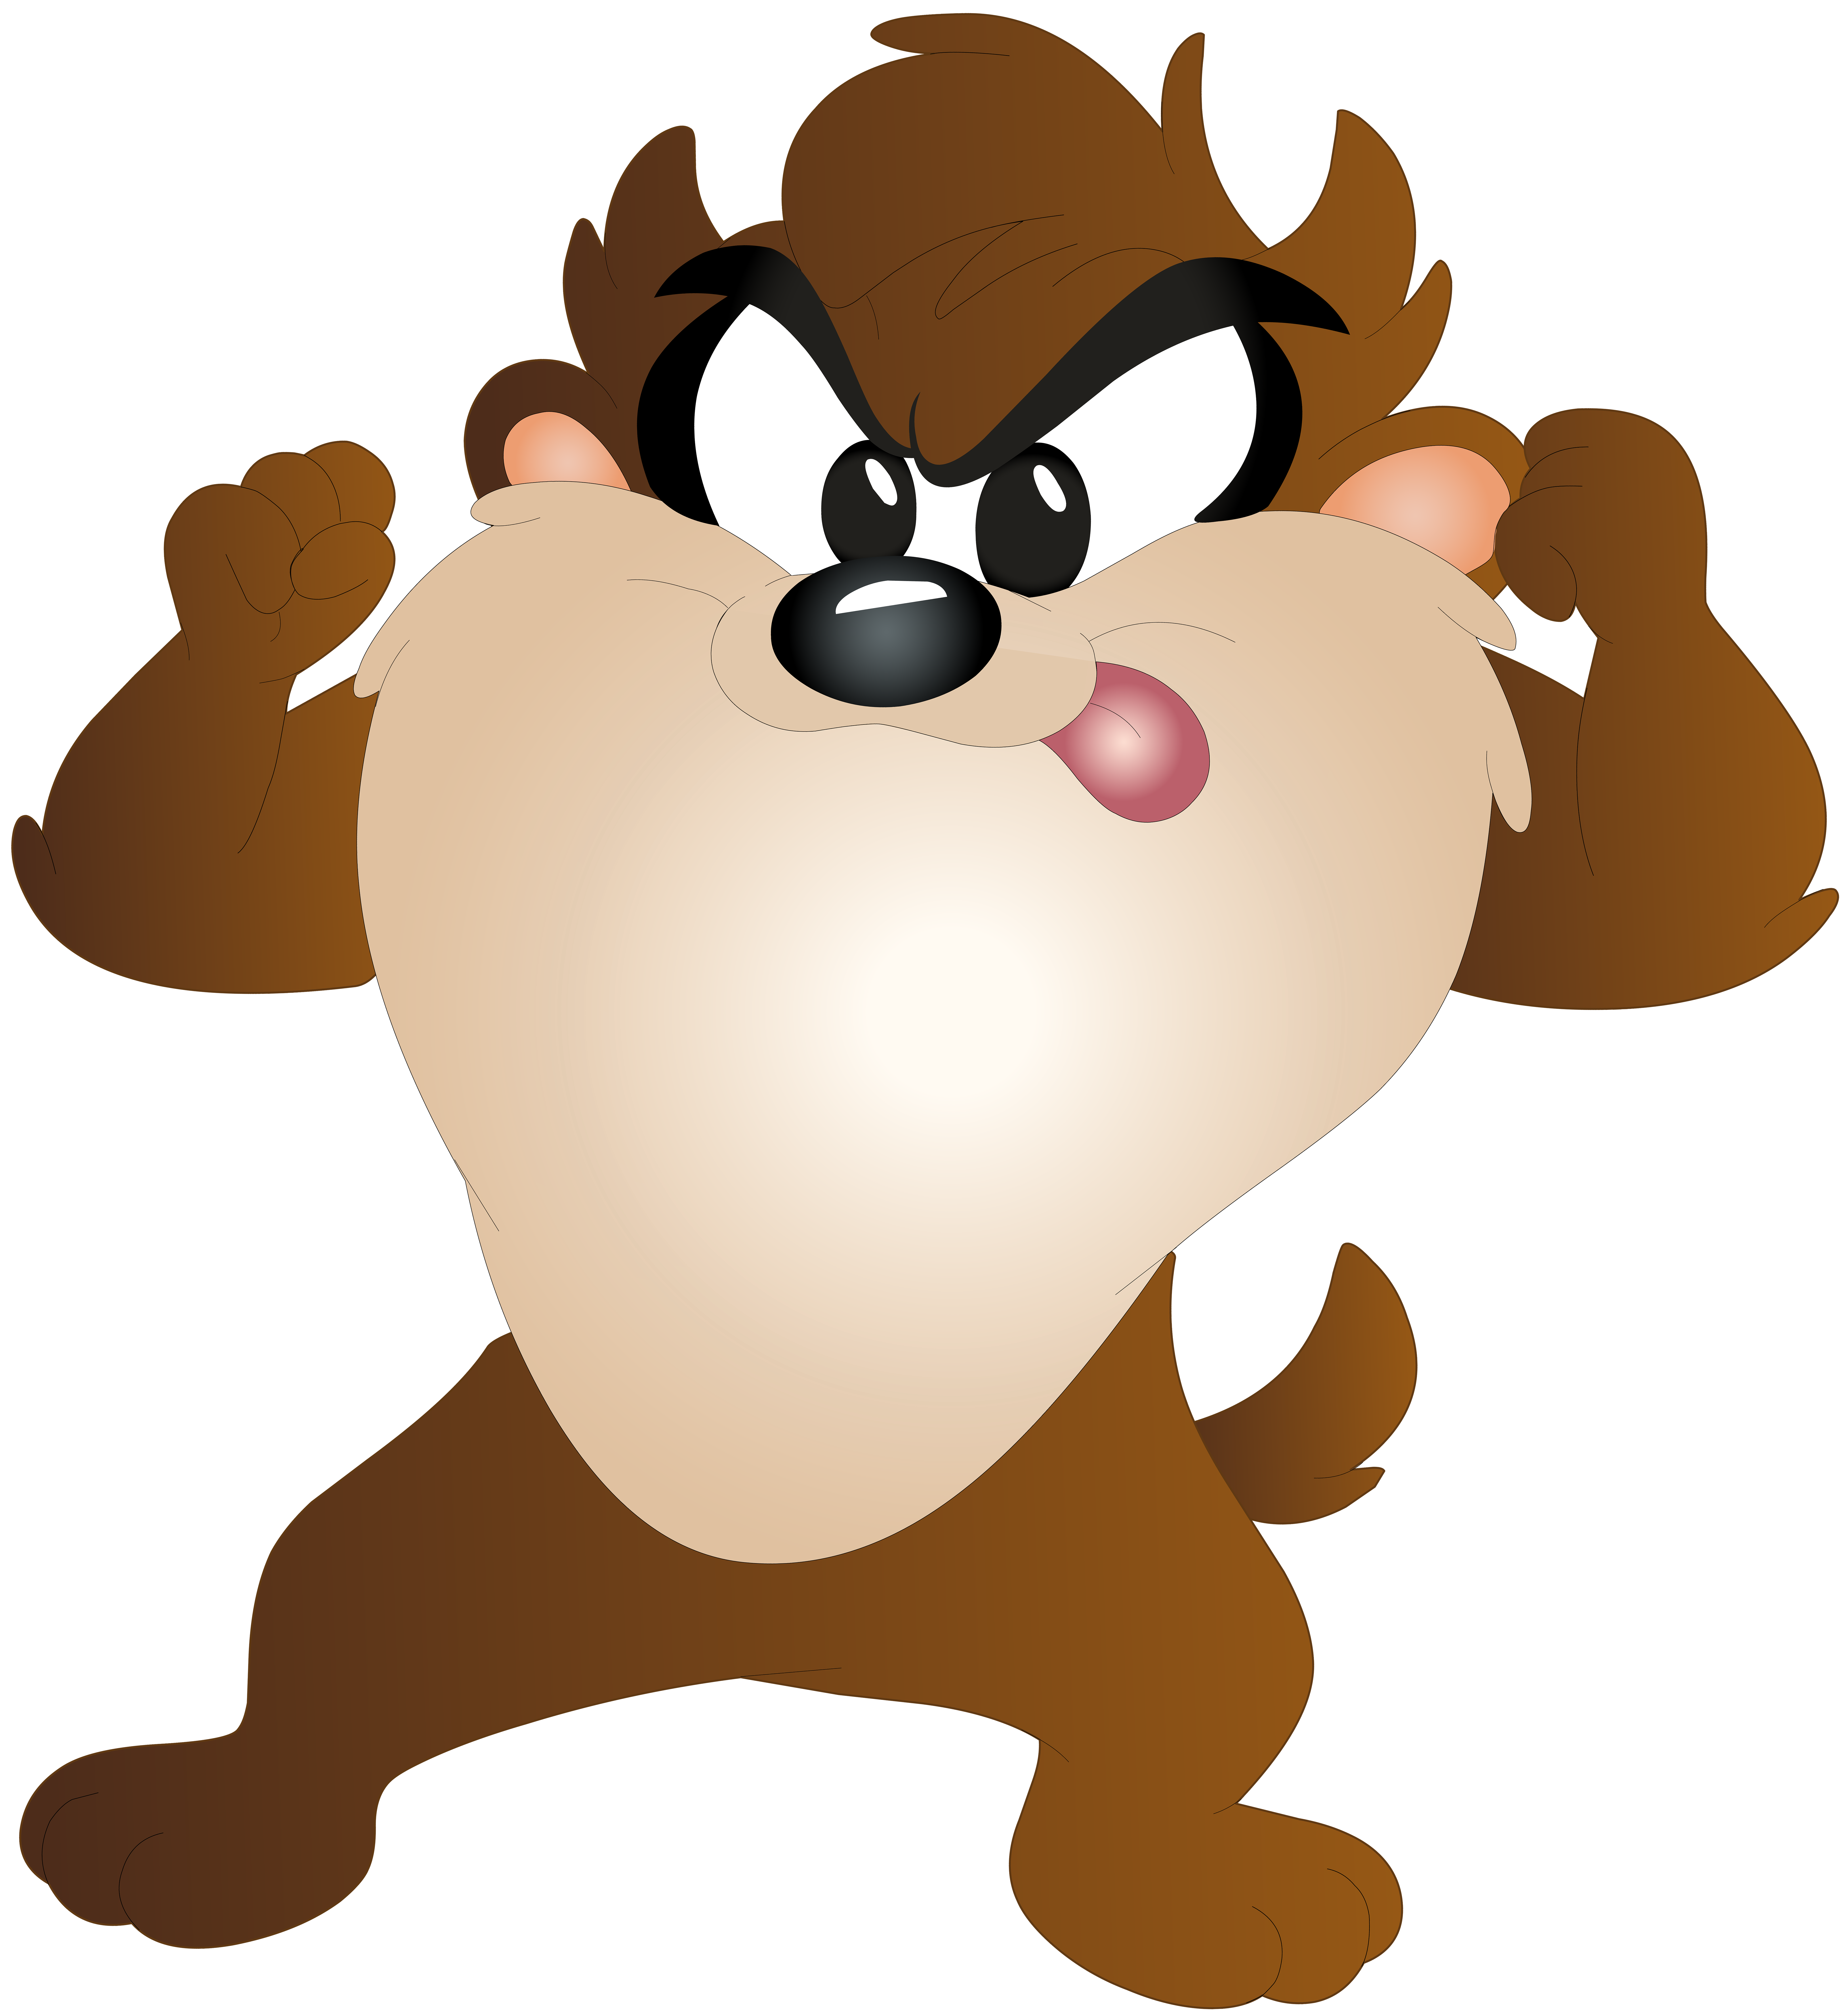 Taz Kid Cartoon Free PNG Clip Art Image.